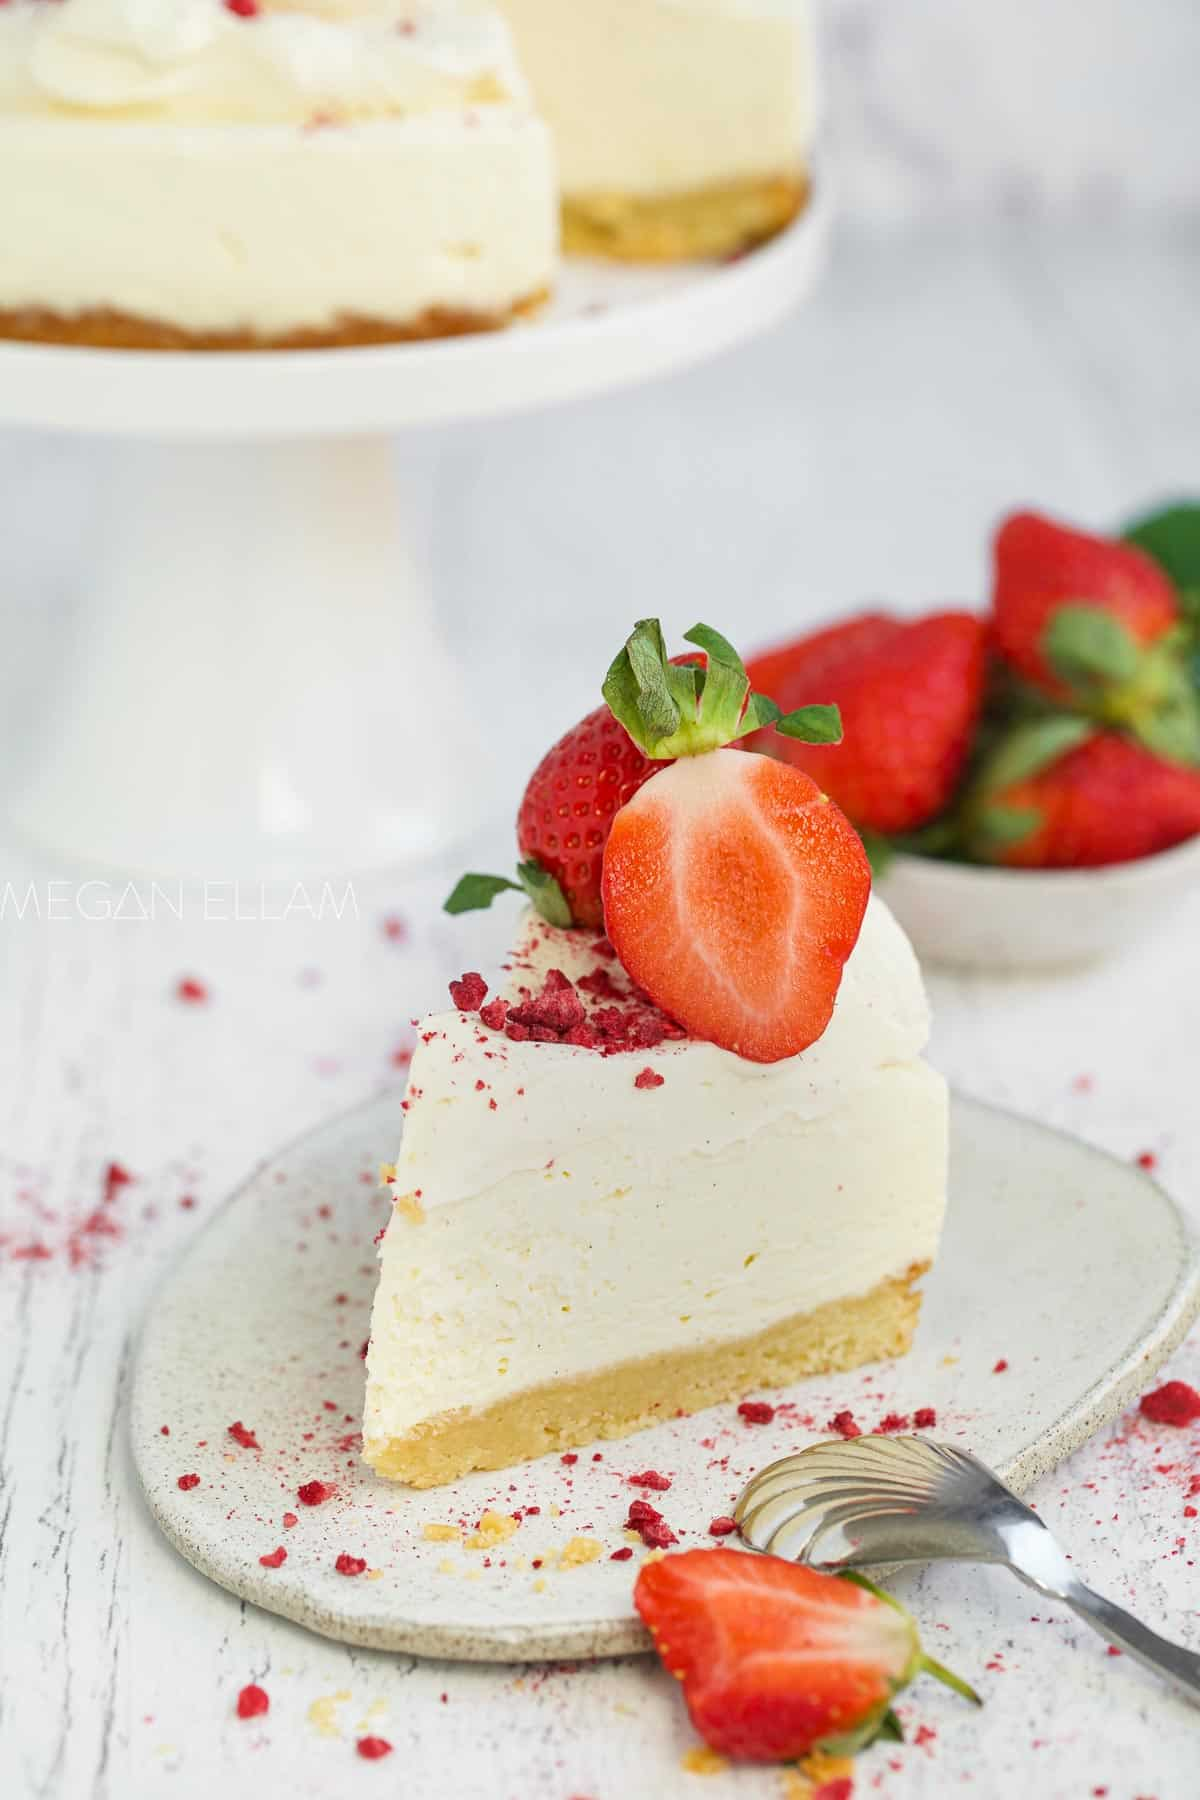 A slice of cheesecake on a plate with berries.